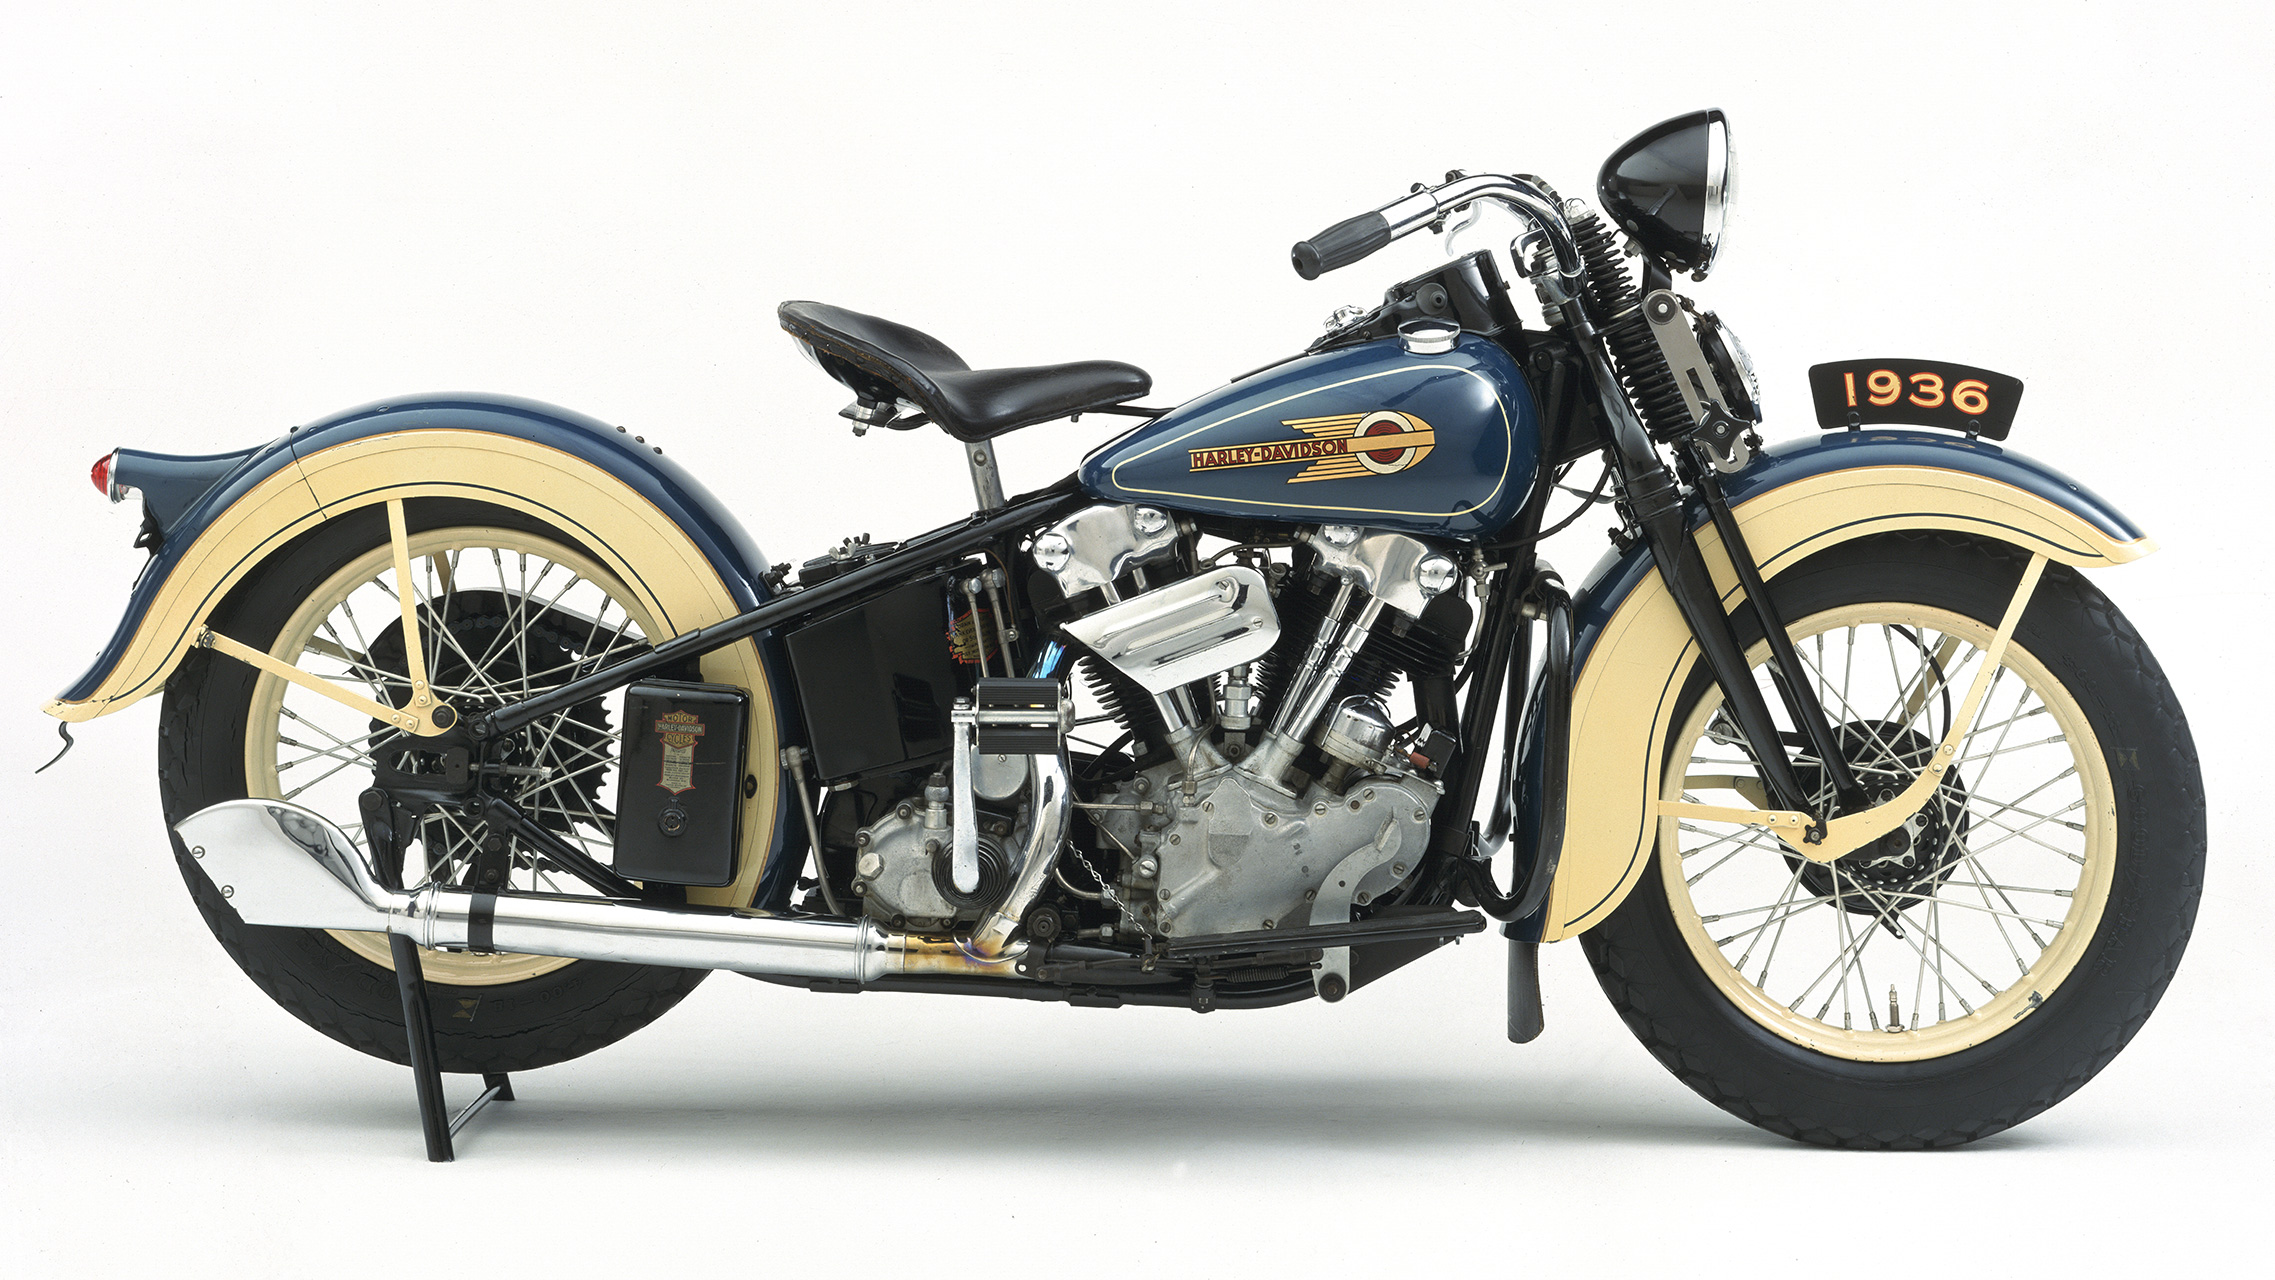 ... Joe Petrali and the 24 hour speed and endurance record set by Fred Ham  in 1937 these bikes became high profile and highly desirable.